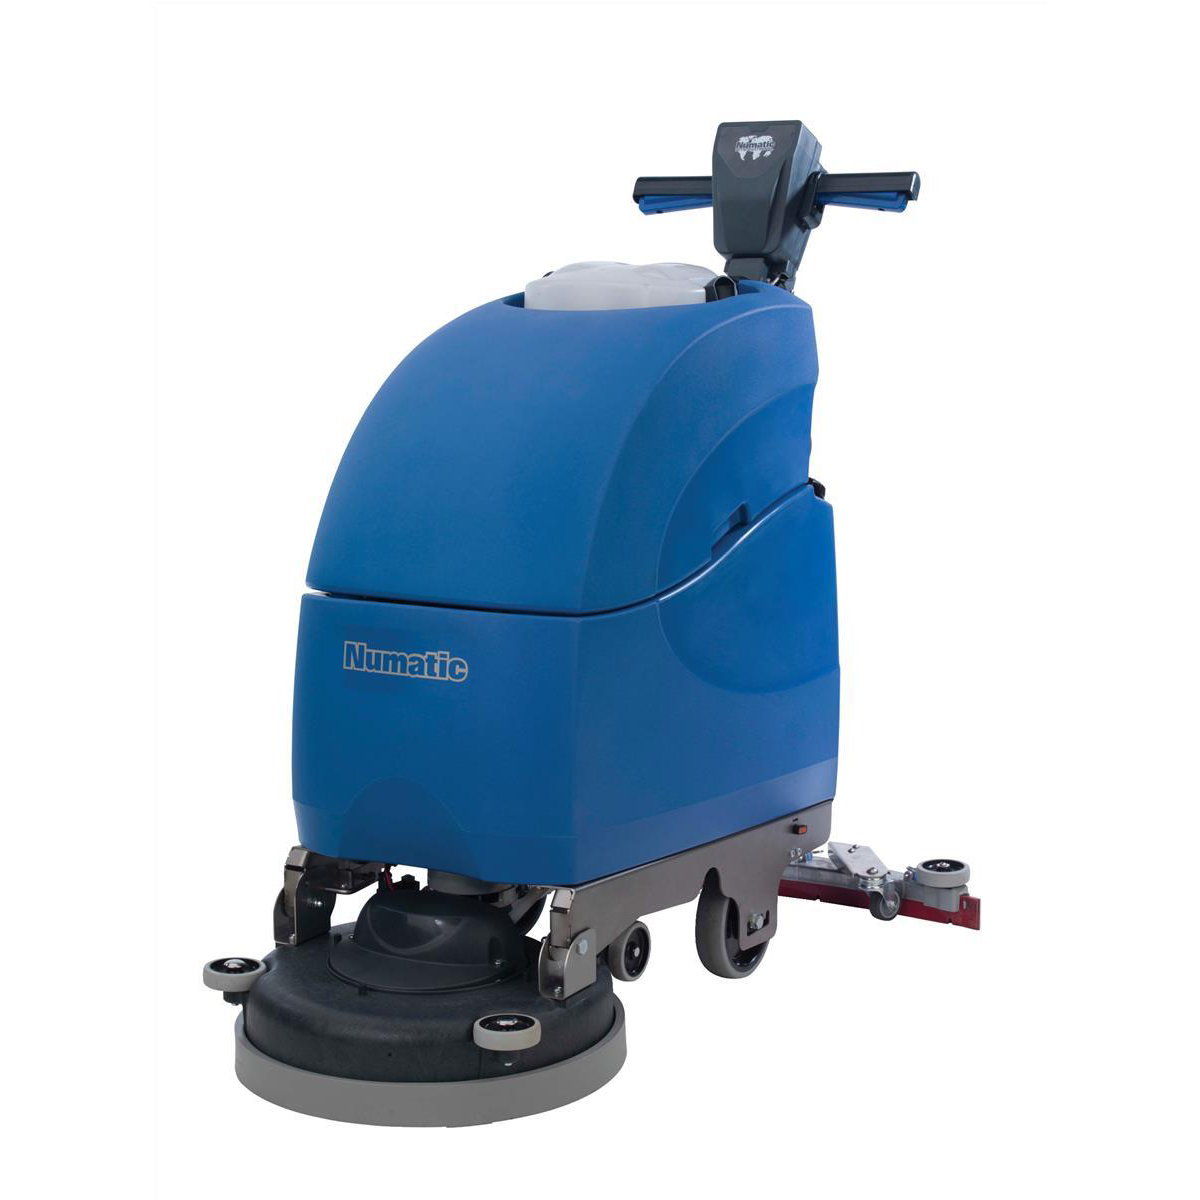 Numatic TGB4045 Floor Cleaner Battery Operated Scrubber Drier Ref 776286